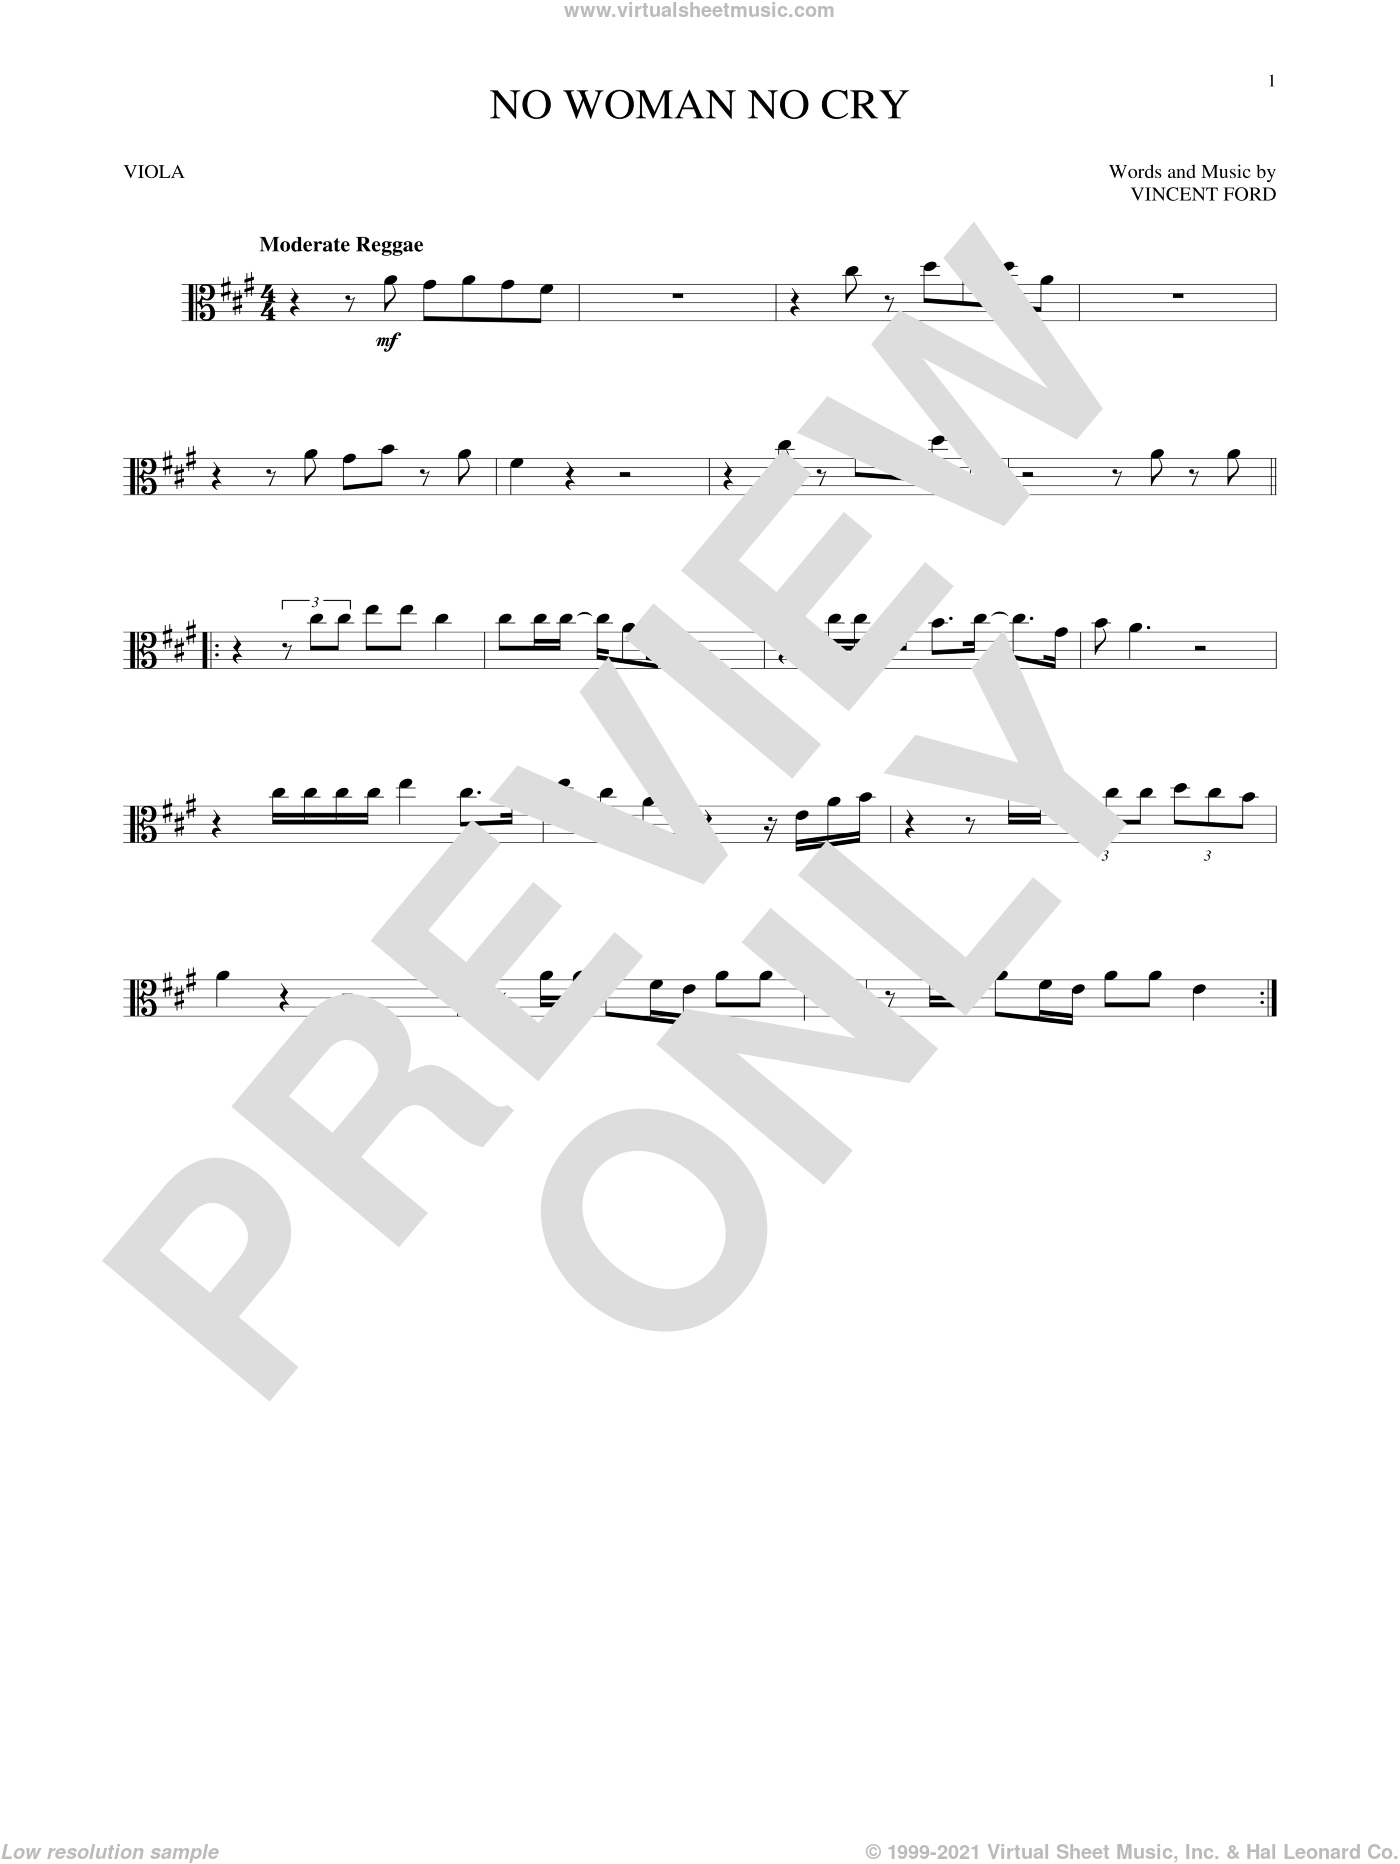 No Woman No Cry sheet music for viola solo by Bob Marley and Vincent Ford, intermediate skill level